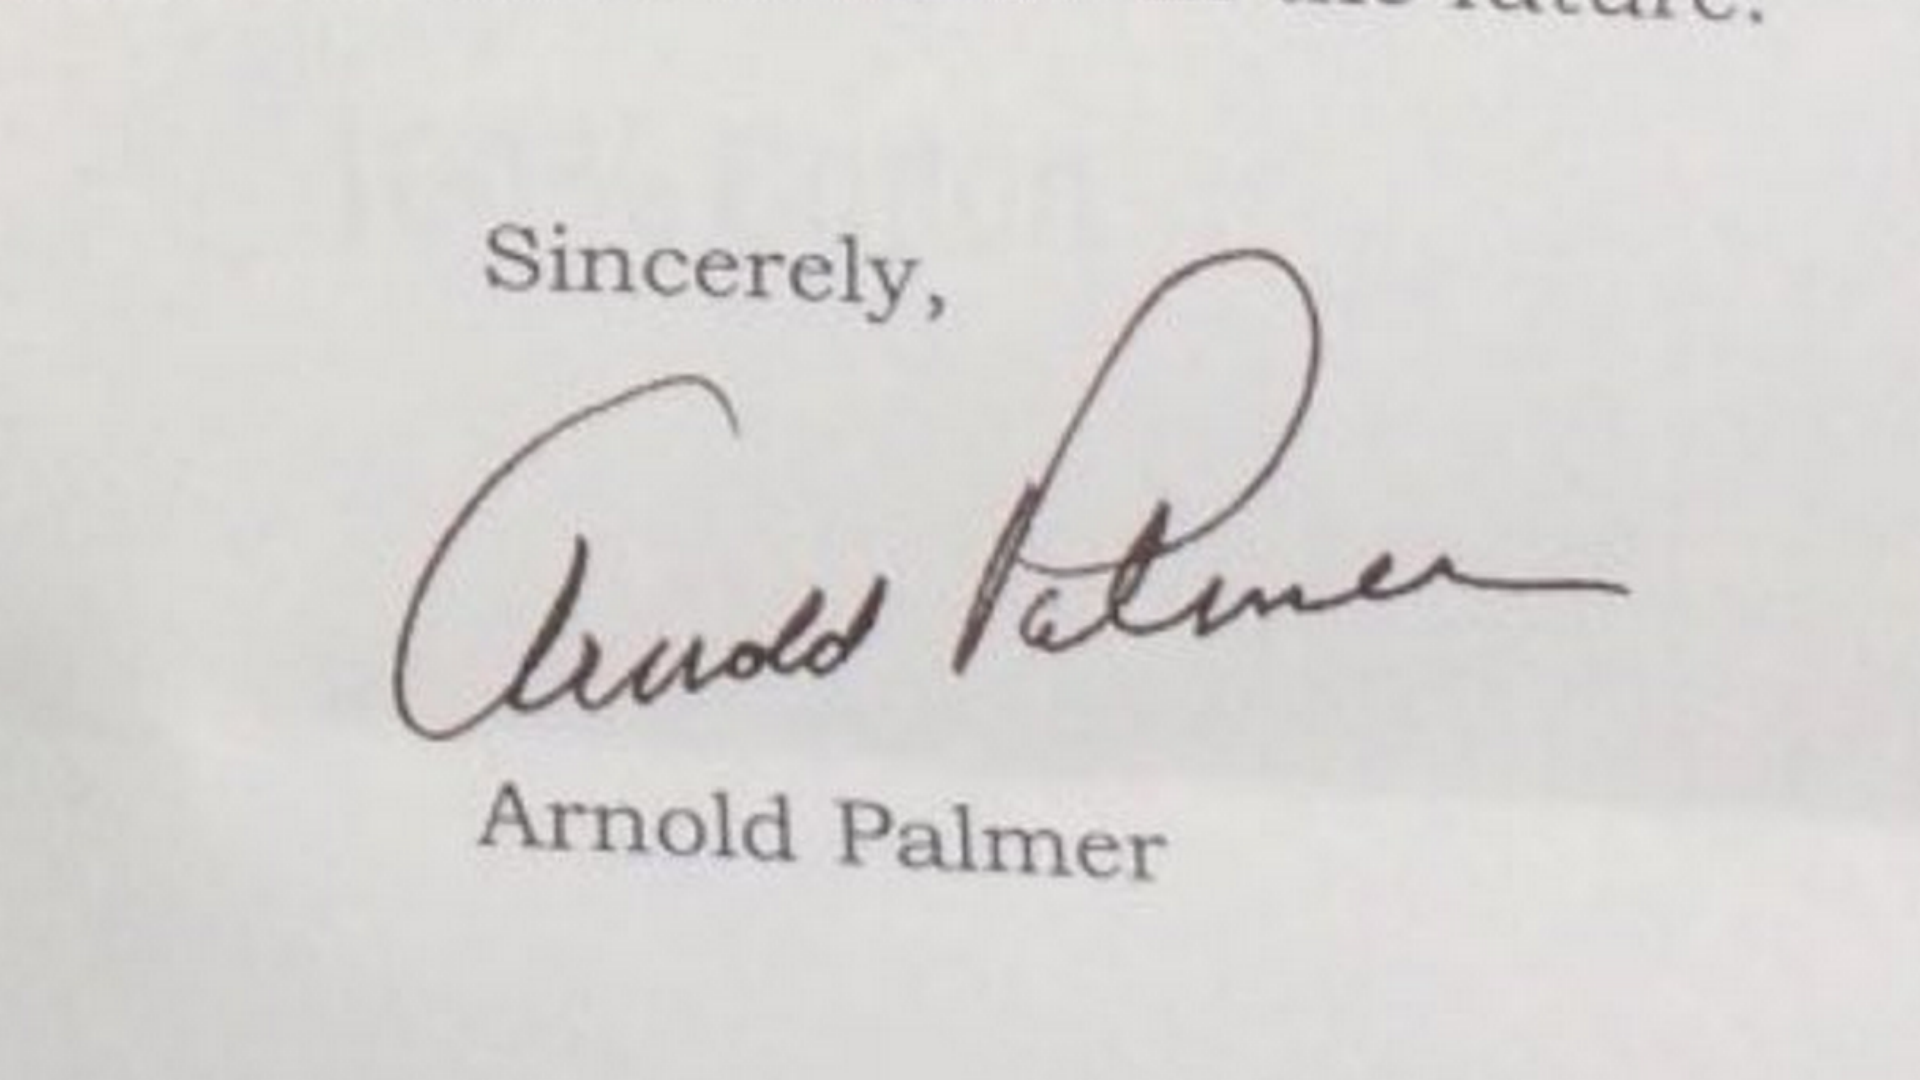 Arnold Palmer's letter to Michigan golfer arrives late